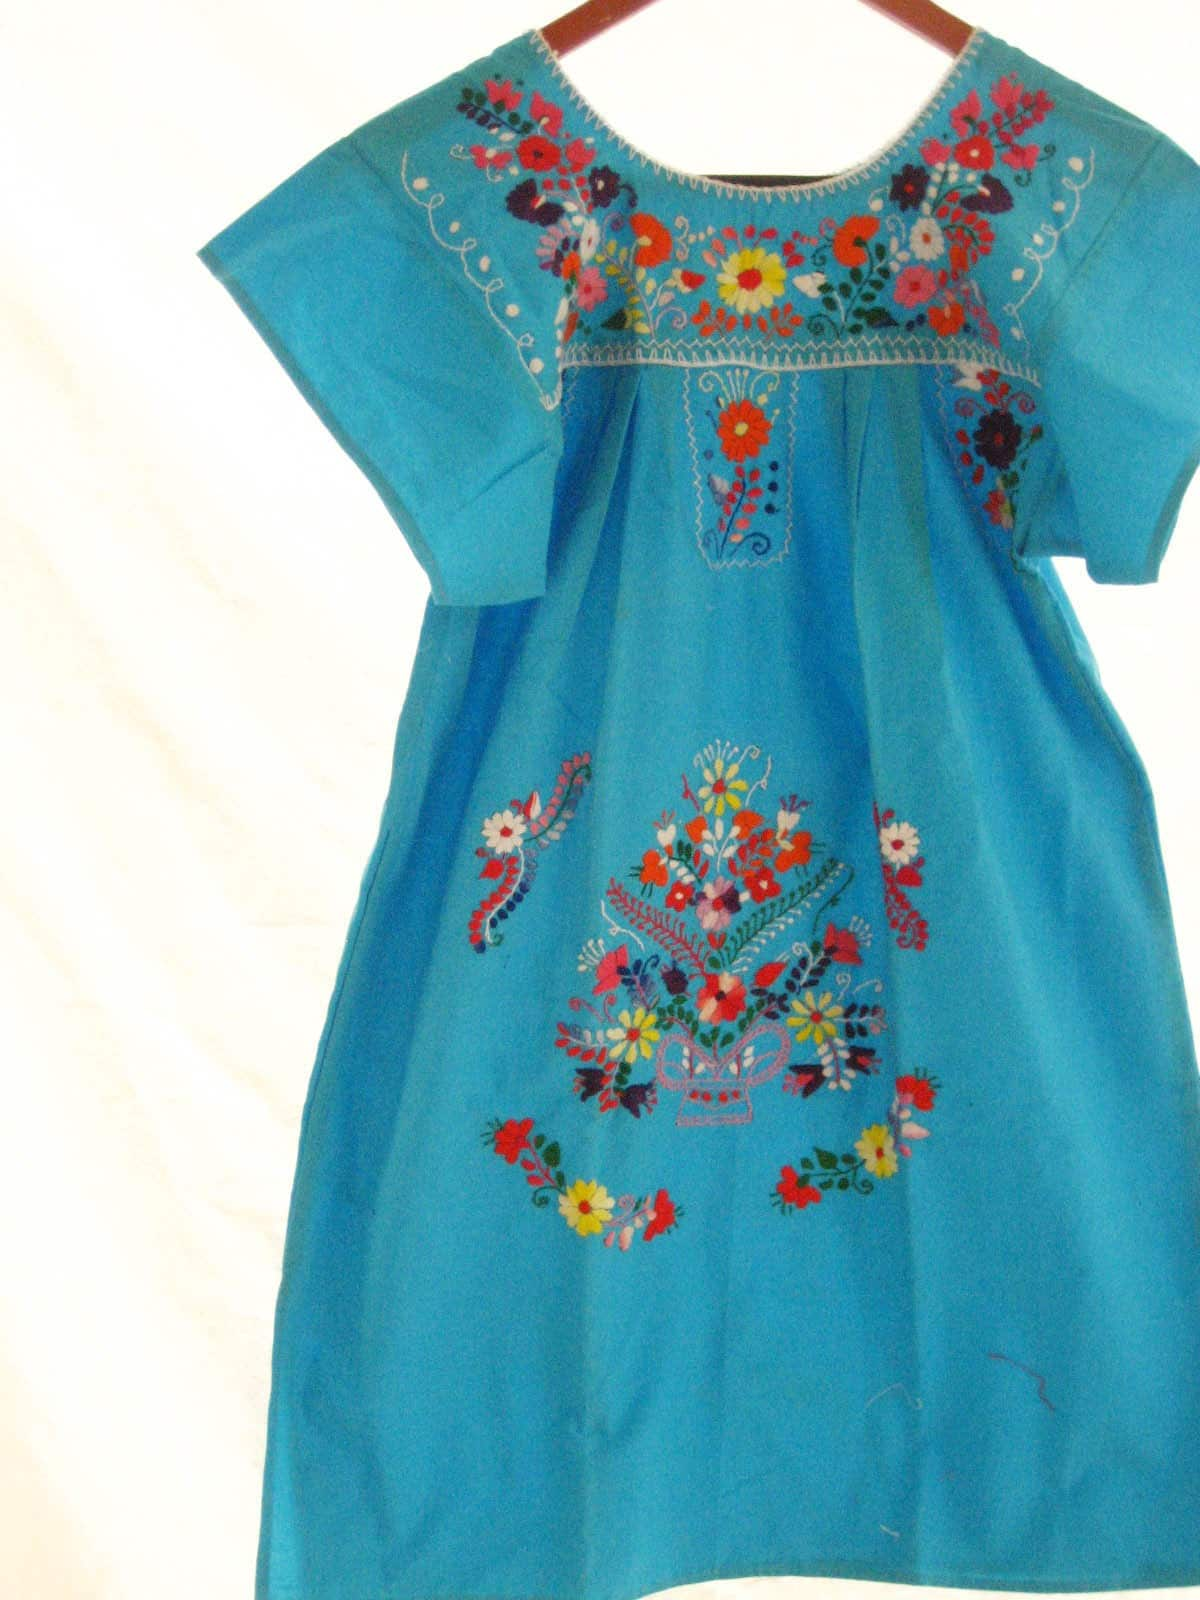 Mexican Embroidered Dress Tunic stylish hippie TURQUESA vintage S M L